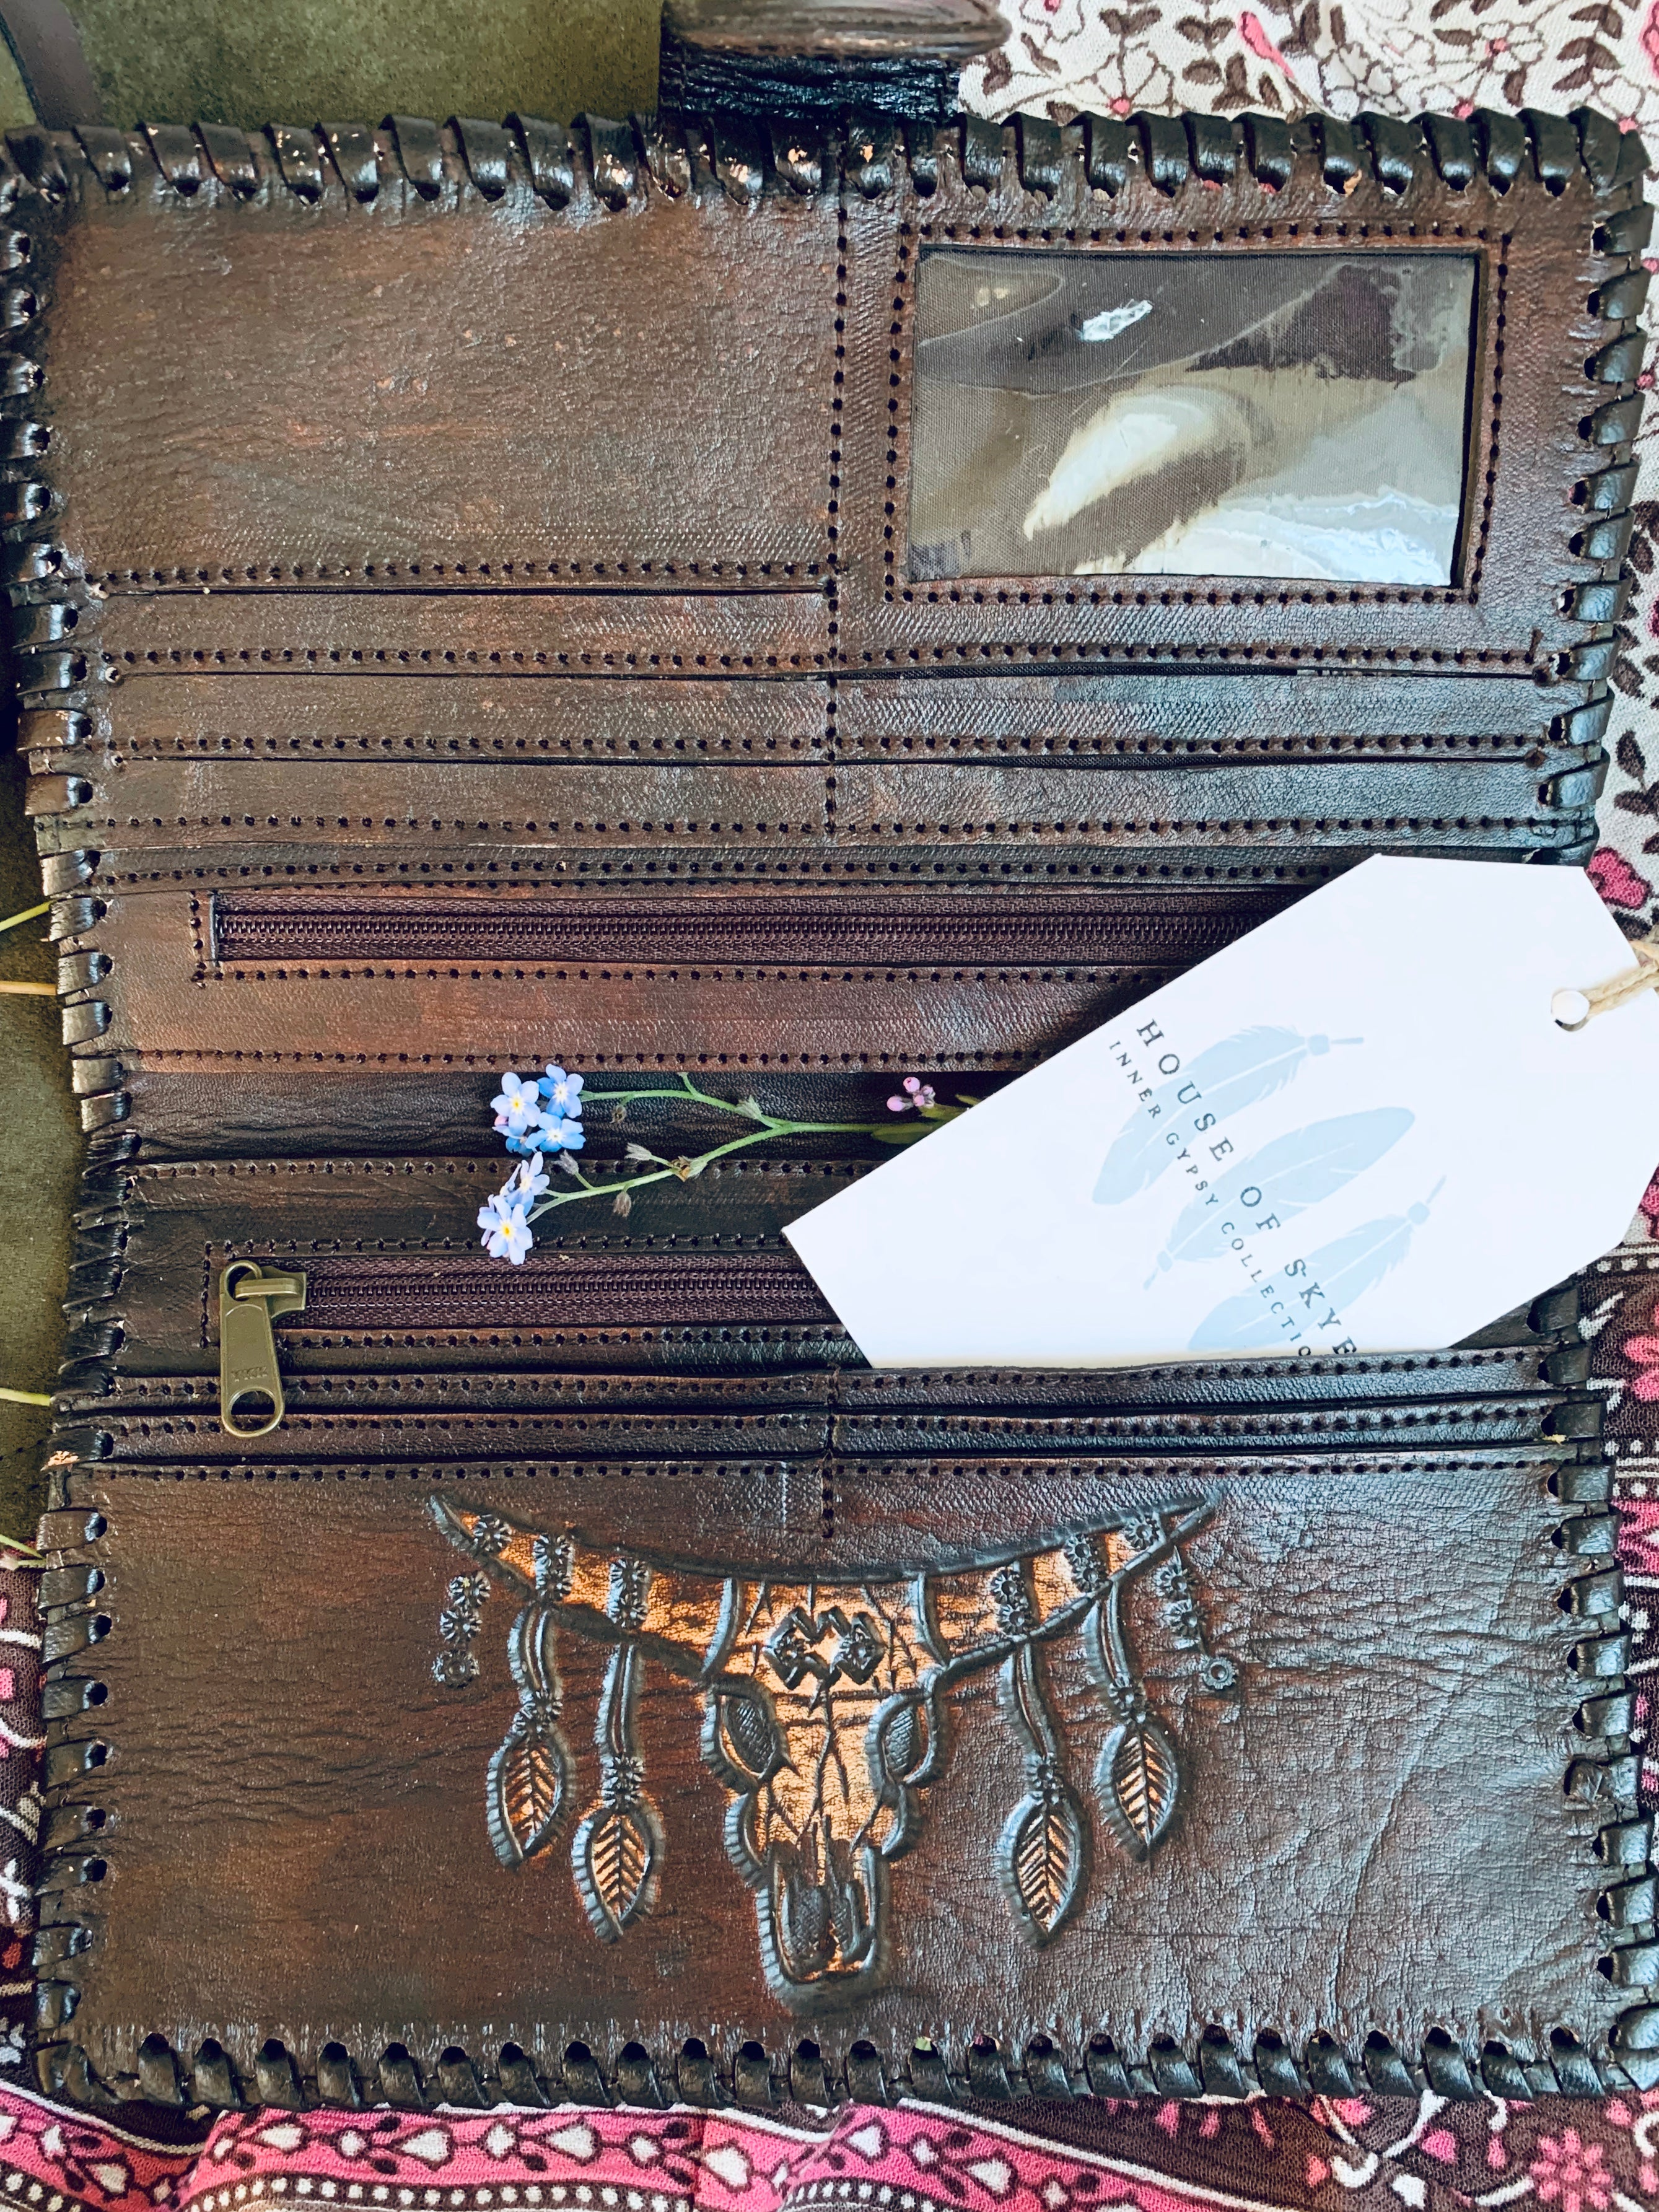 The gypsy Traveler Wallet